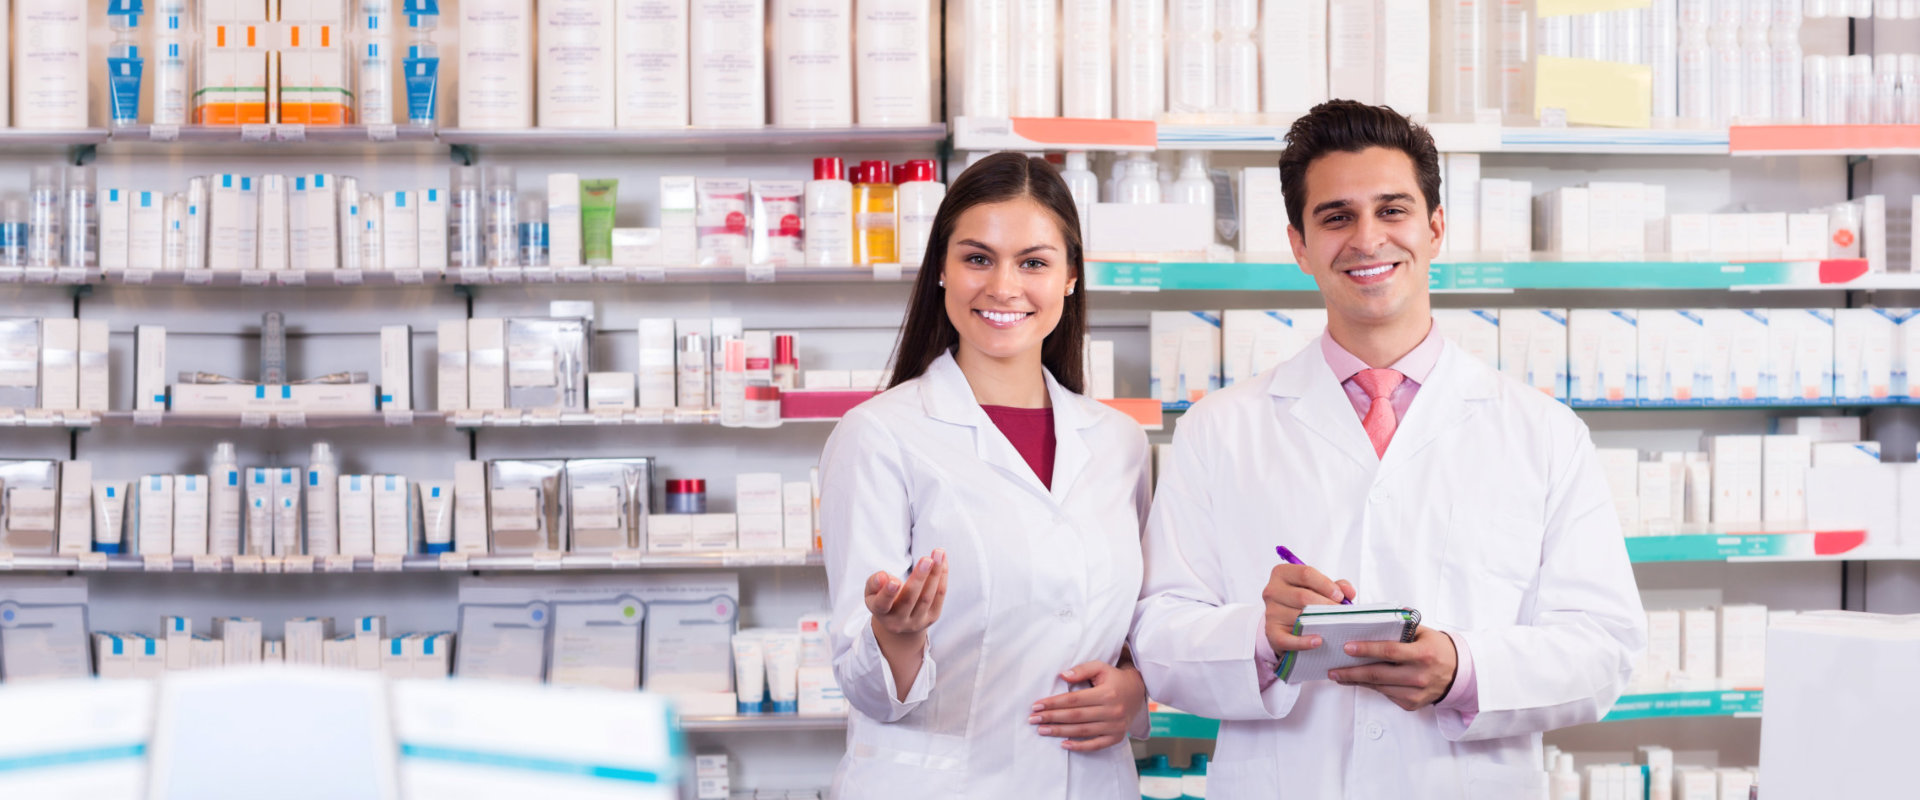 Smiling pharmacist and techician at the pharmacy